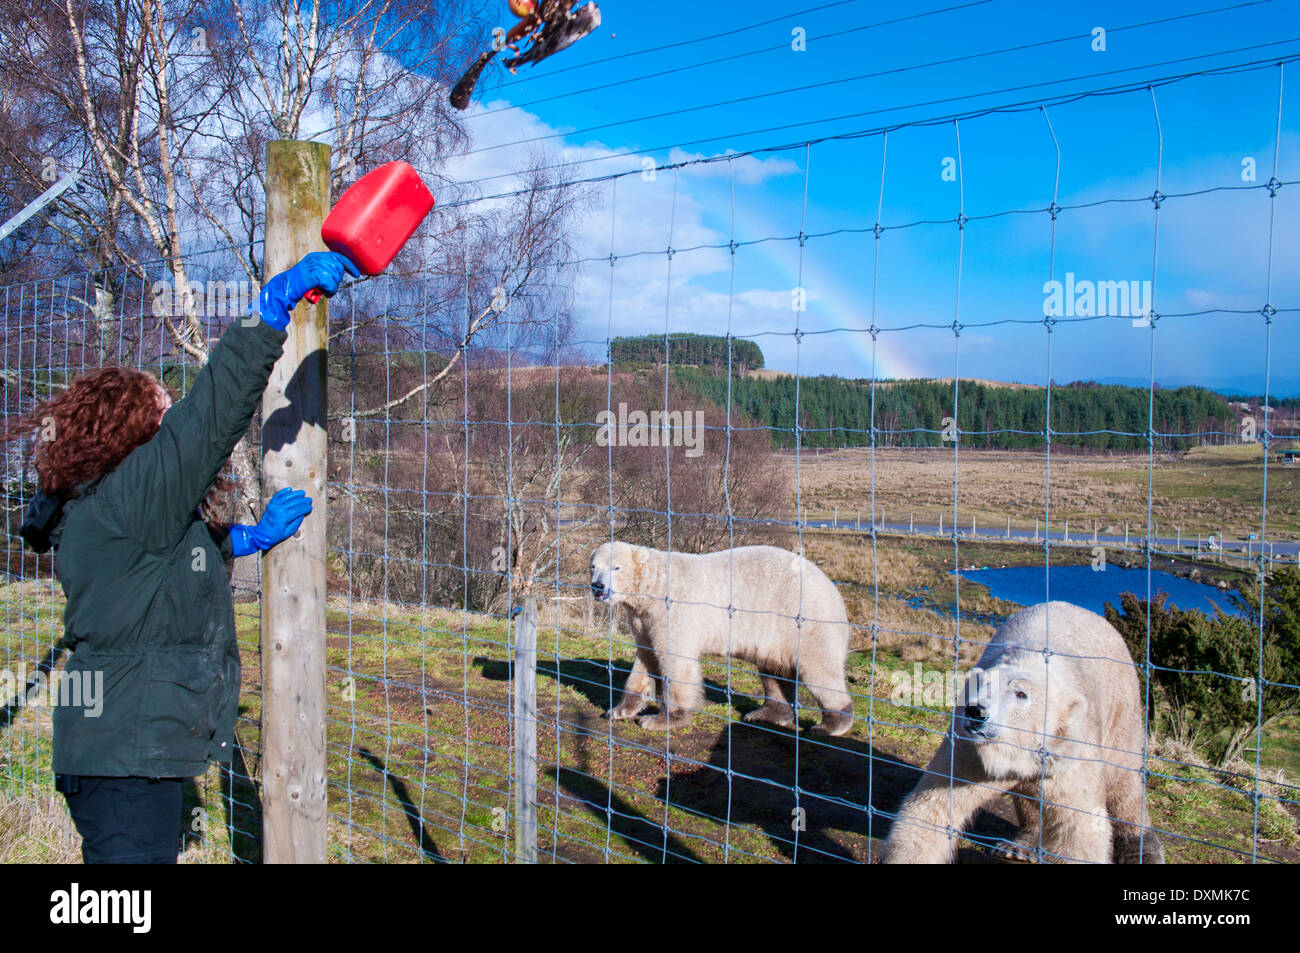 Lunchtime food for young male polar bears Walker and Arktos is thrown over the fence by animal keeper at Highland Wildlife Park - Stock Image